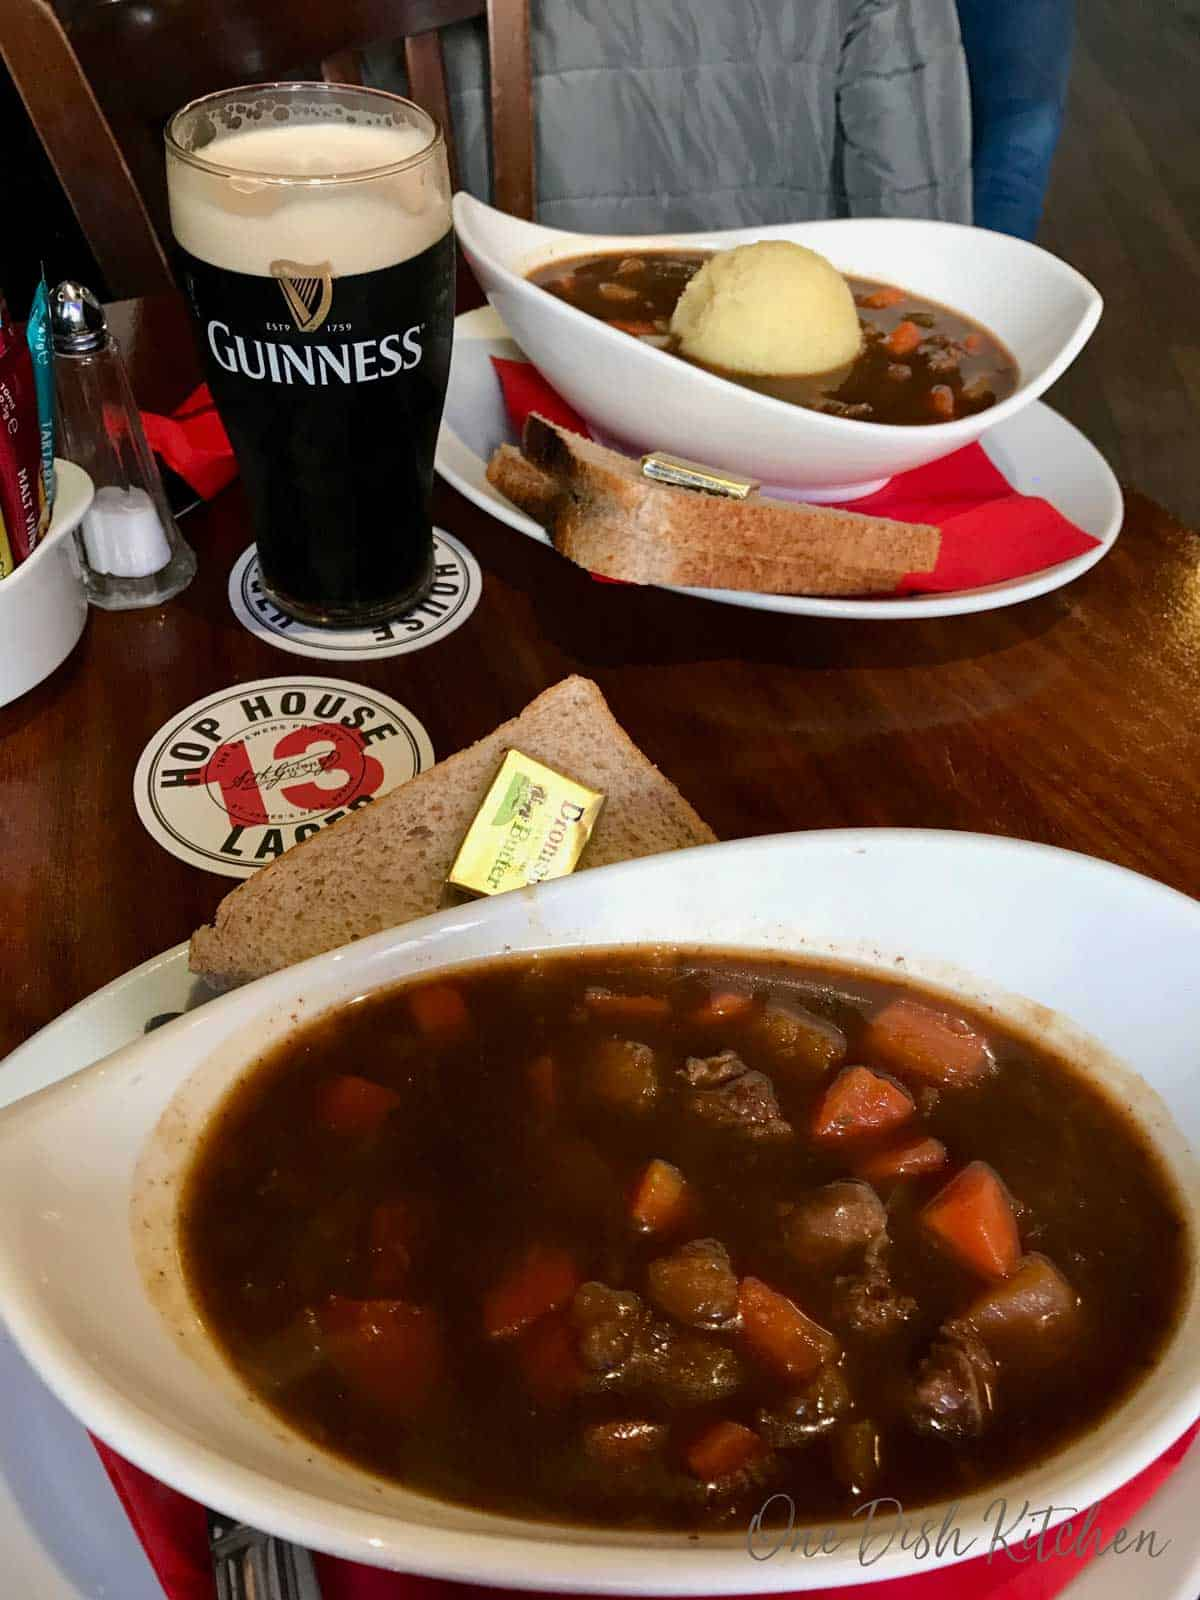 Enjoying two bowls of irish stew in a pub in dublin with a glass of Guinness.